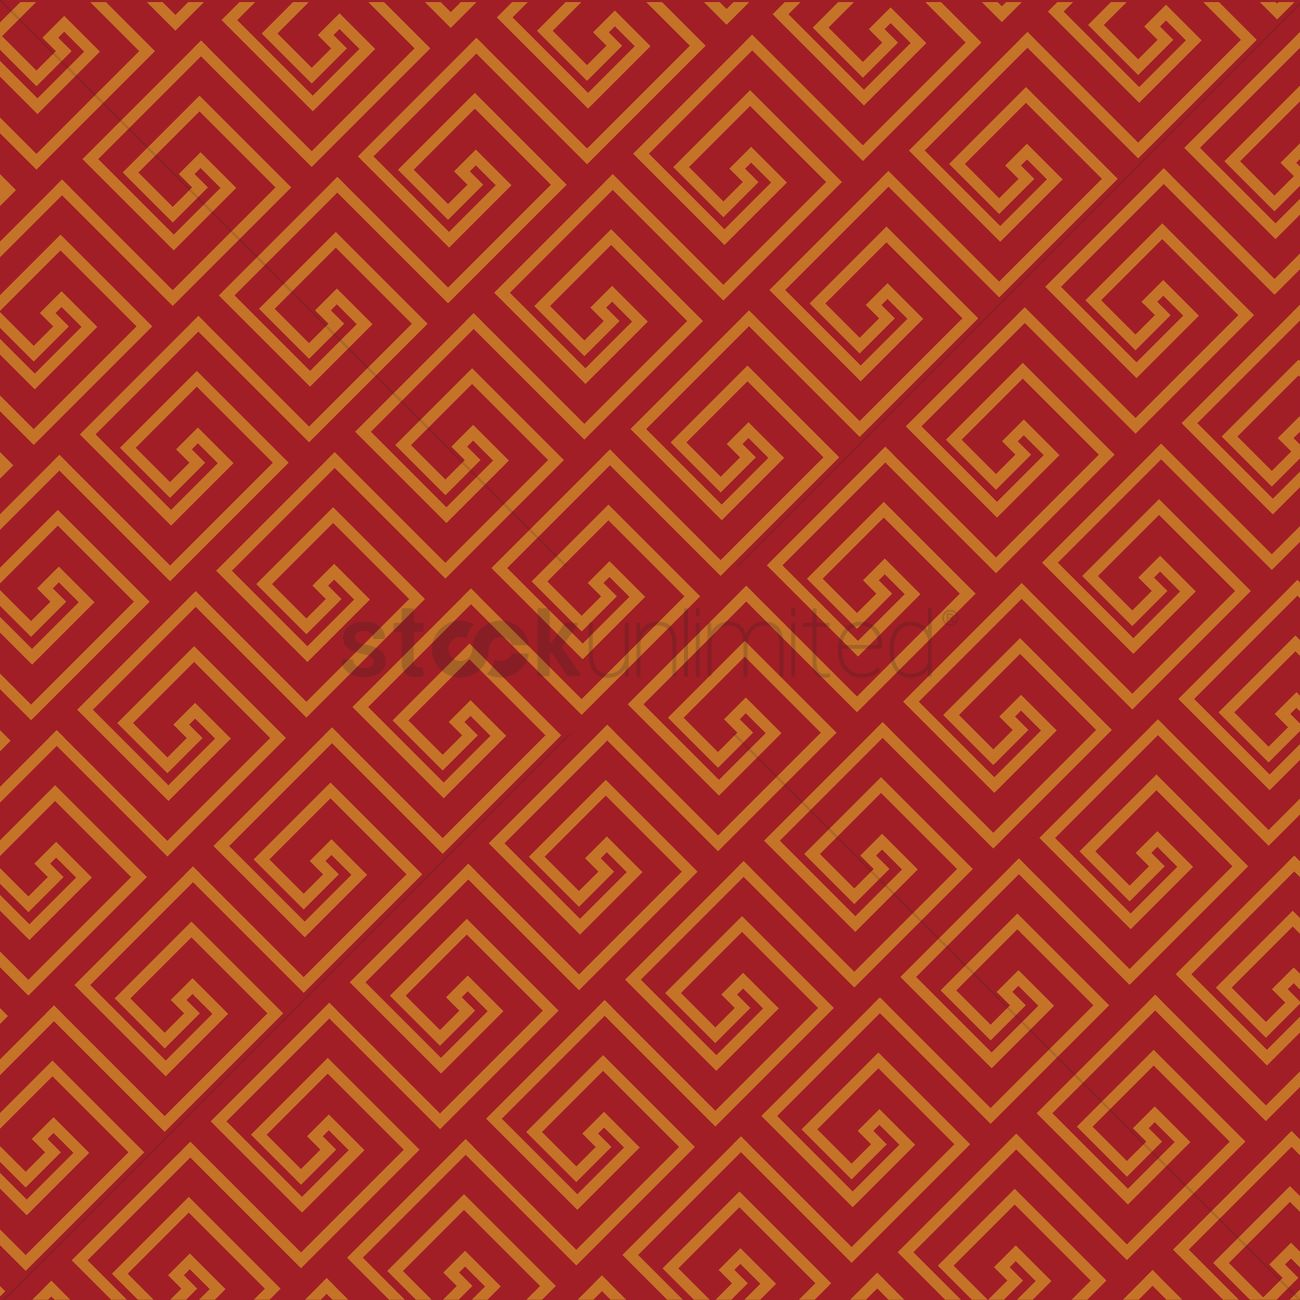 Background image 7945 - Chinese Pattern Background Vector Graphic